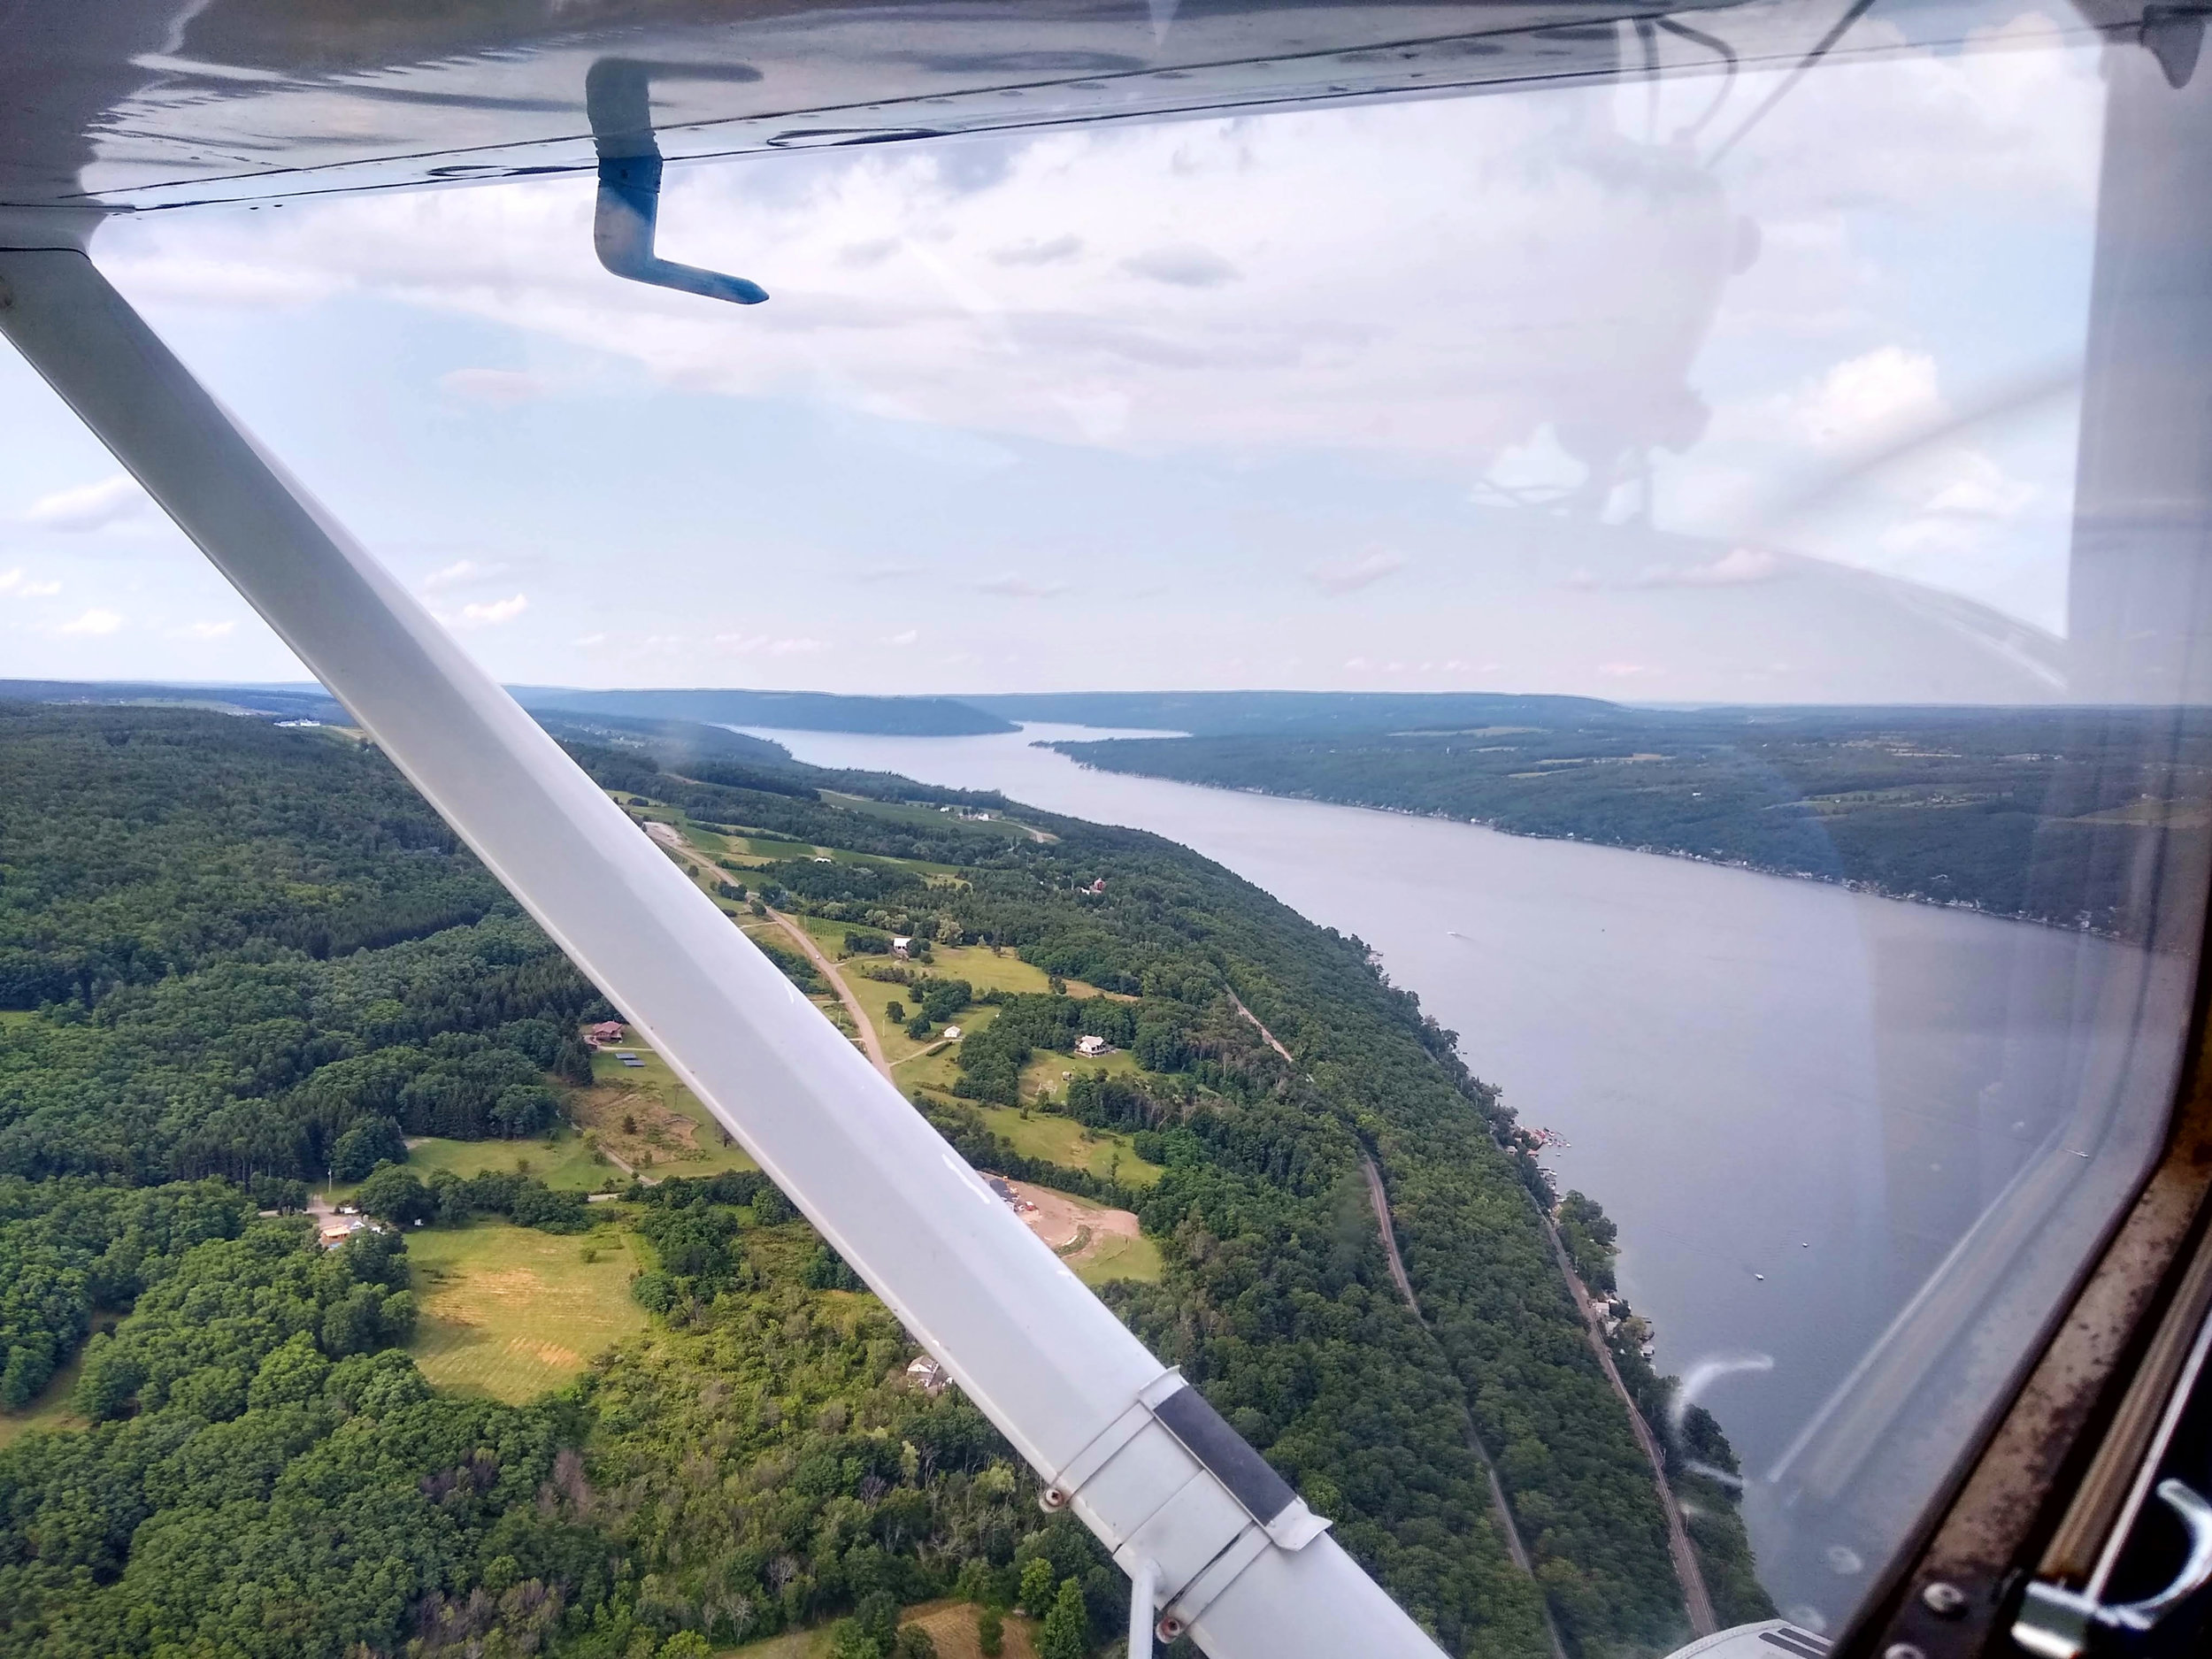 Heading north after leaving Hammondsport airspace